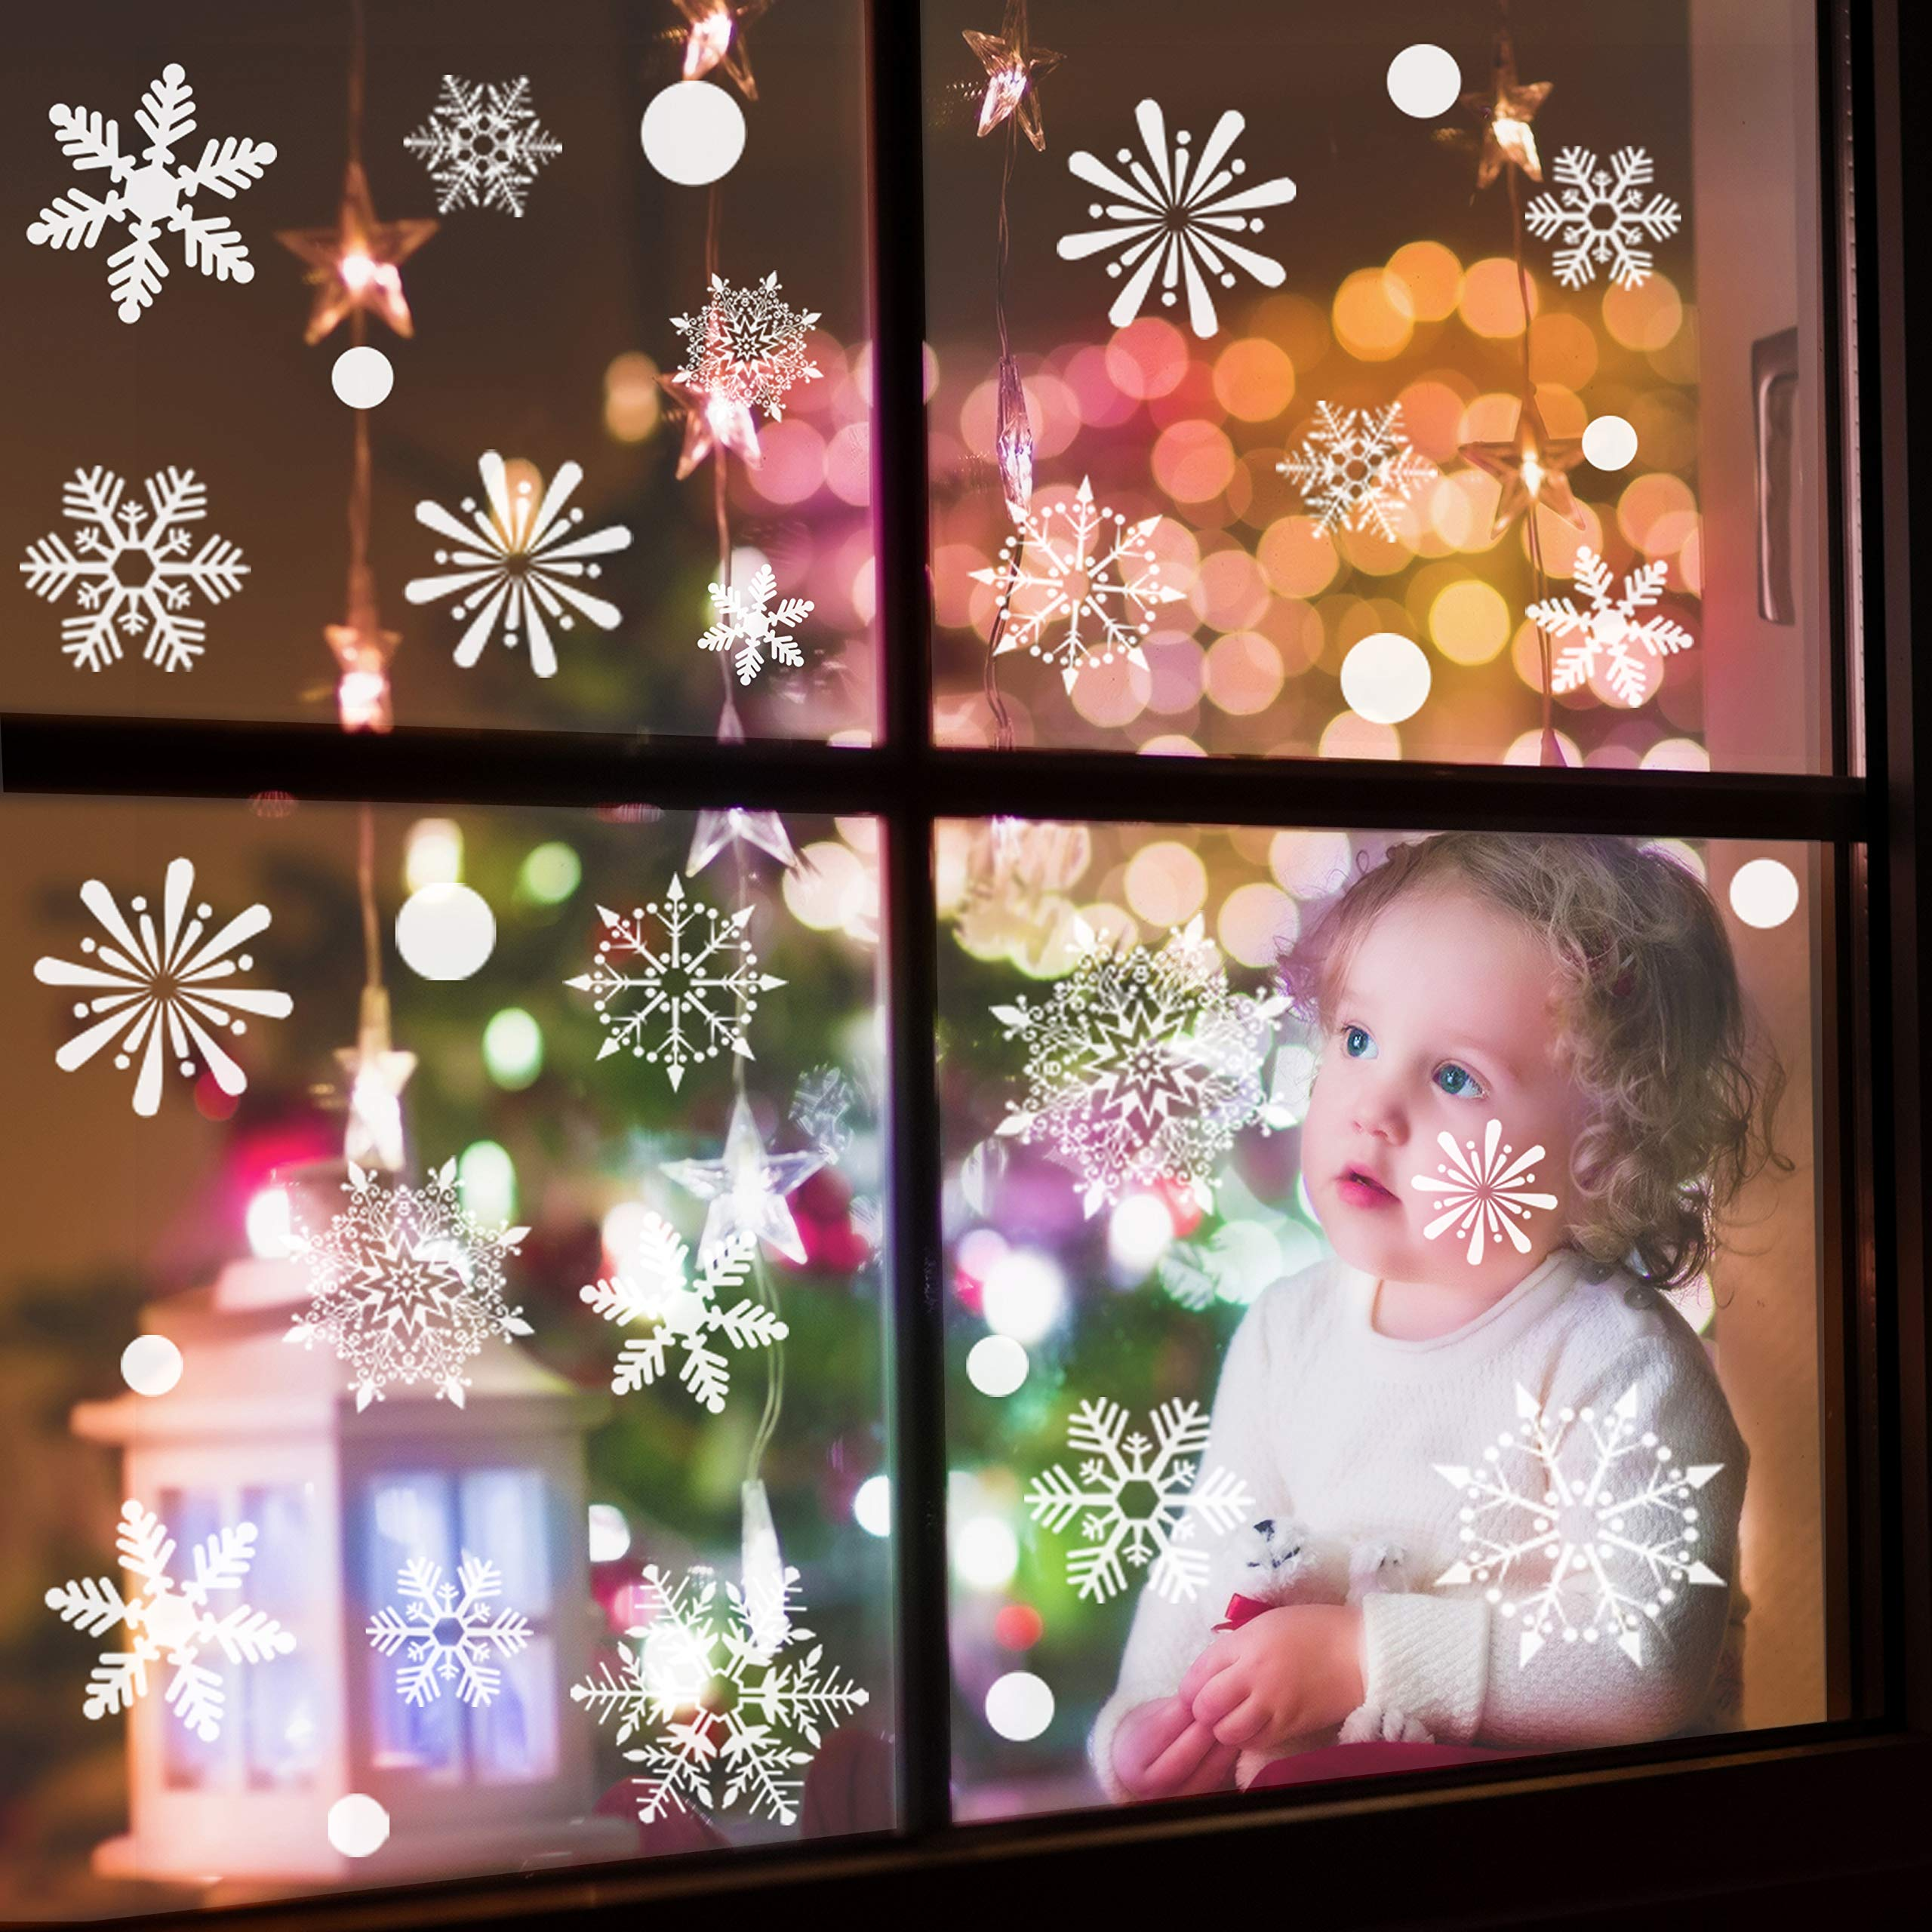 Sinceroduct Christmas Decorations Window Clings Decal,108 Piece White Snowflake Decorations,Christmas Window Stickers for Kids,Wedding Birthday Holiday Party Decorations Supplies.